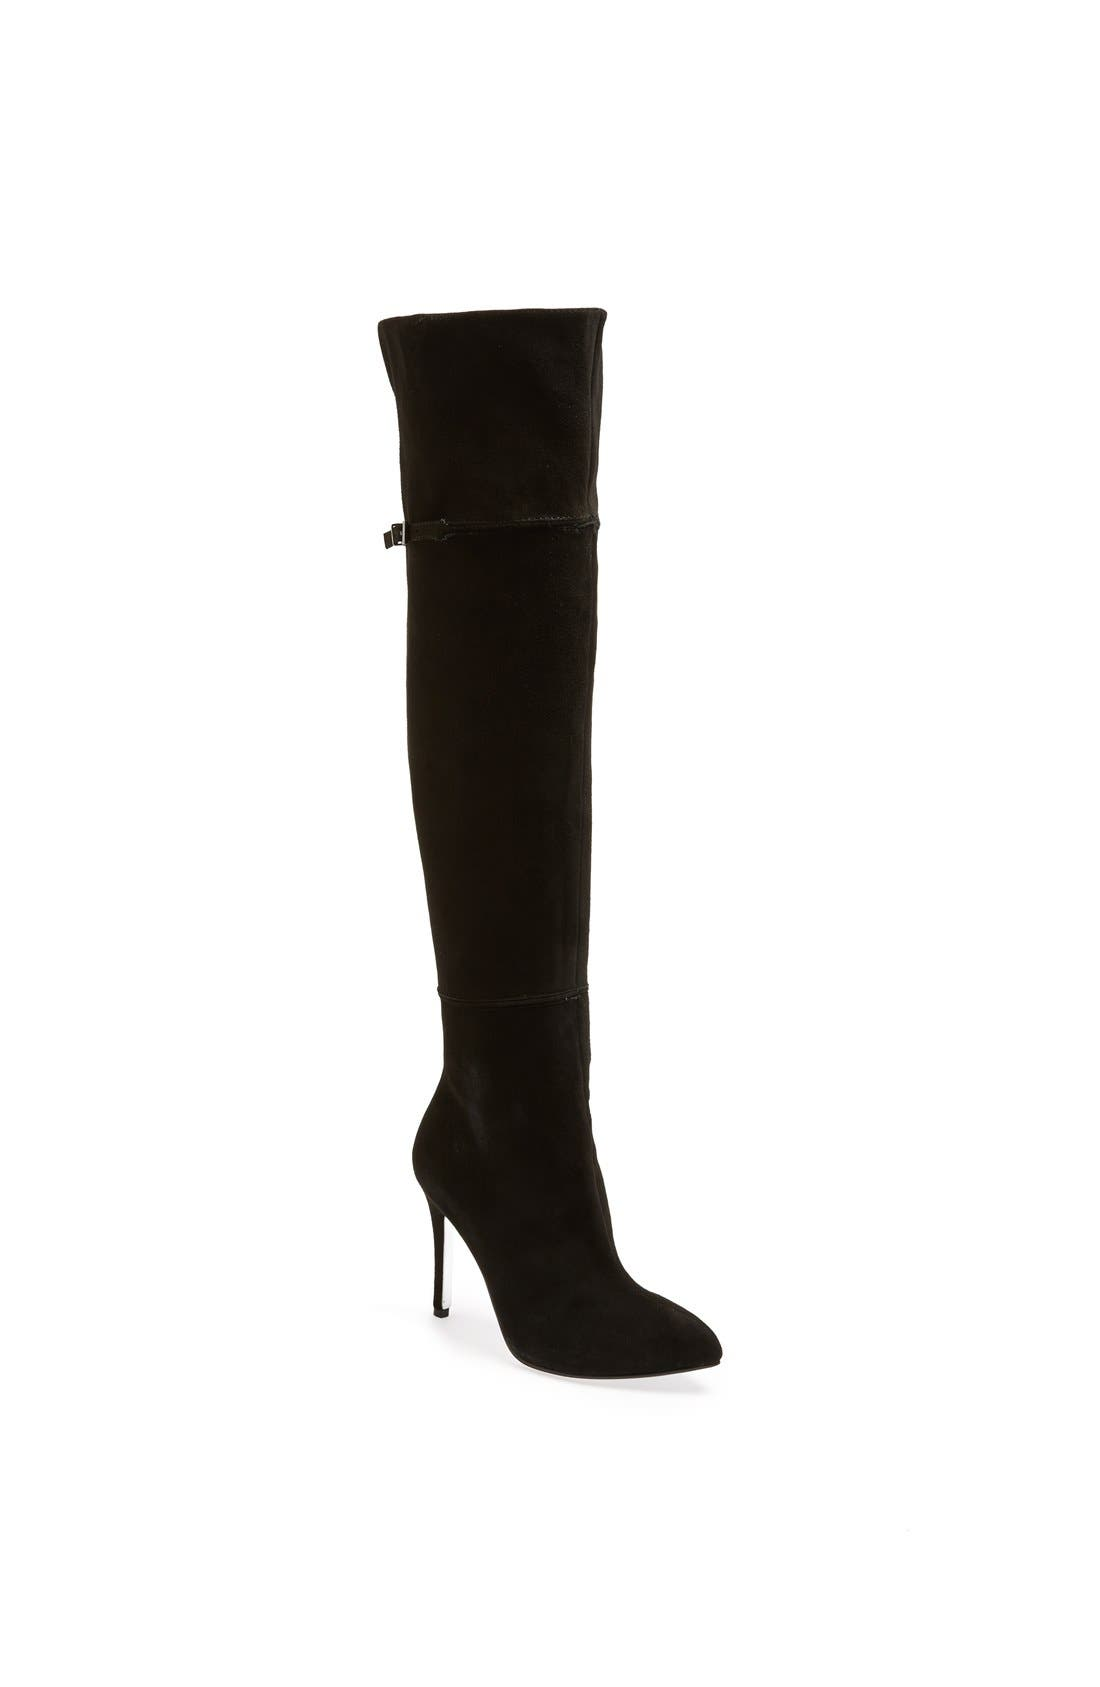 'Cassie' Over the Knee Boot,                             Main thumbnail 1, color,                             001